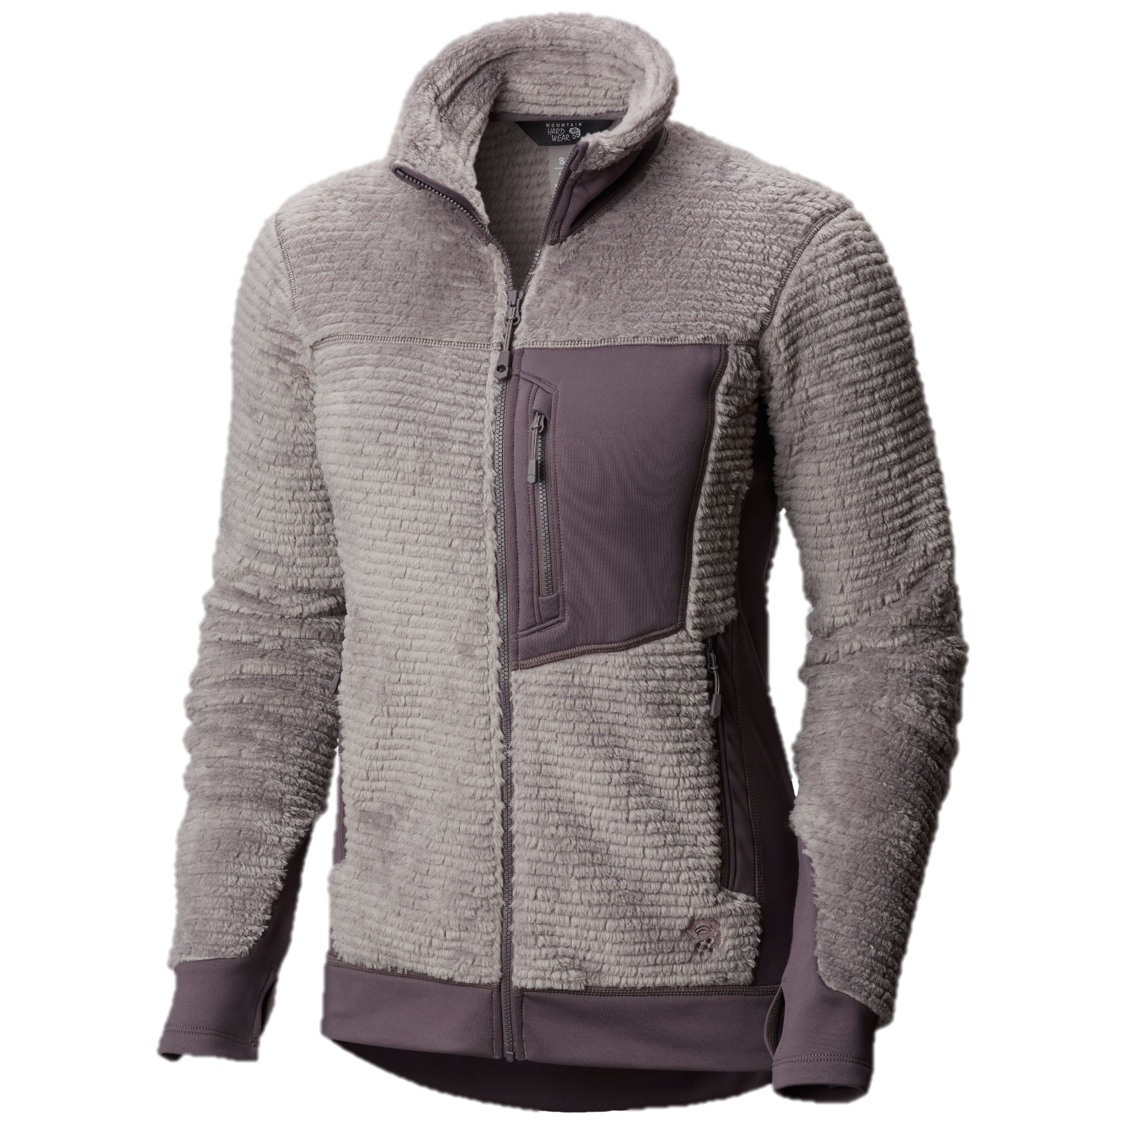 fleece jacket - Mountain Hardwear Monkey FleeceRead why→